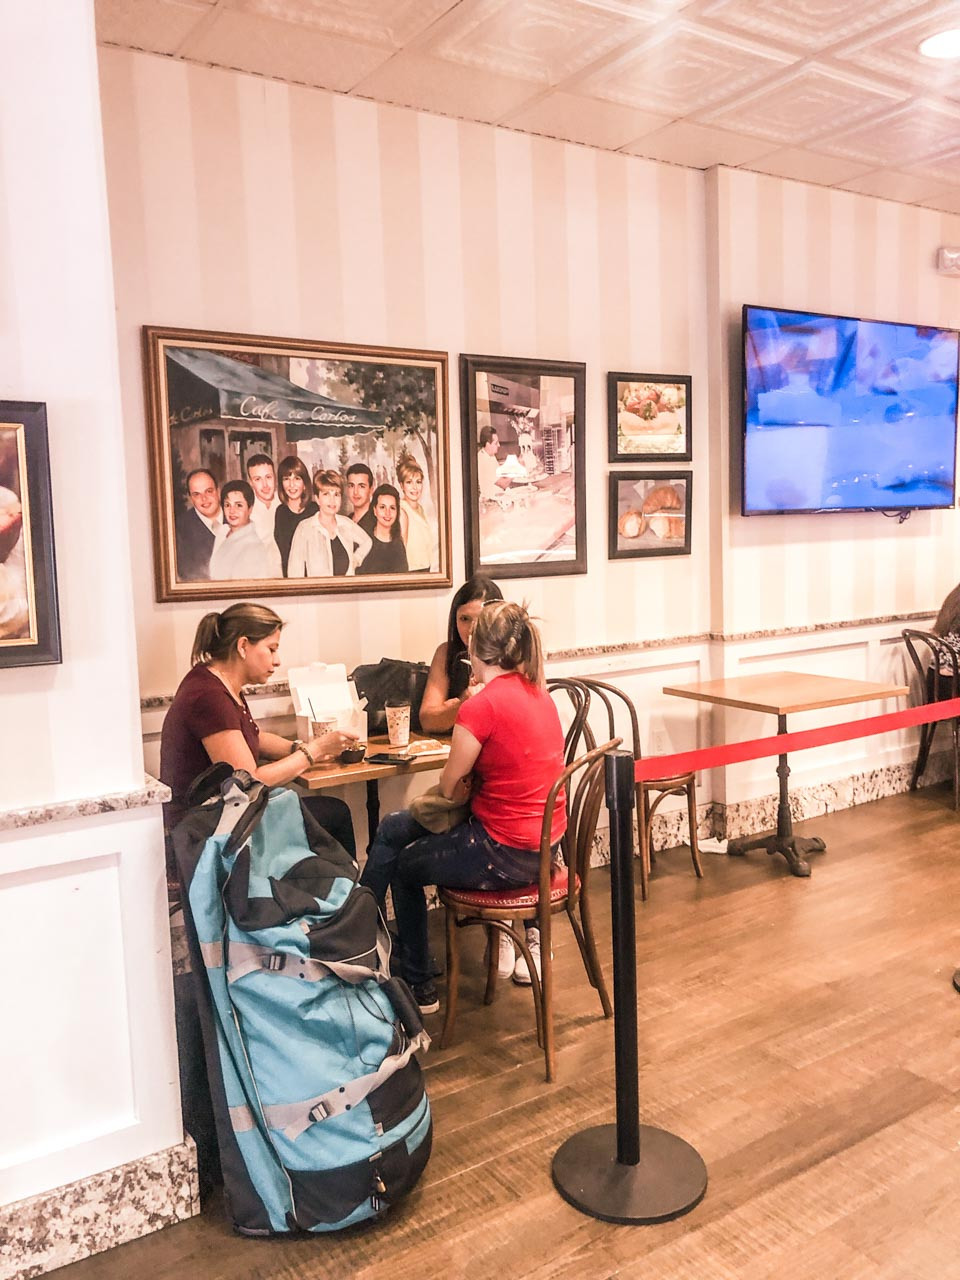 Three women having cakes and coffee at Carlo's Bakery with the Valastro family photo on the wall behind them